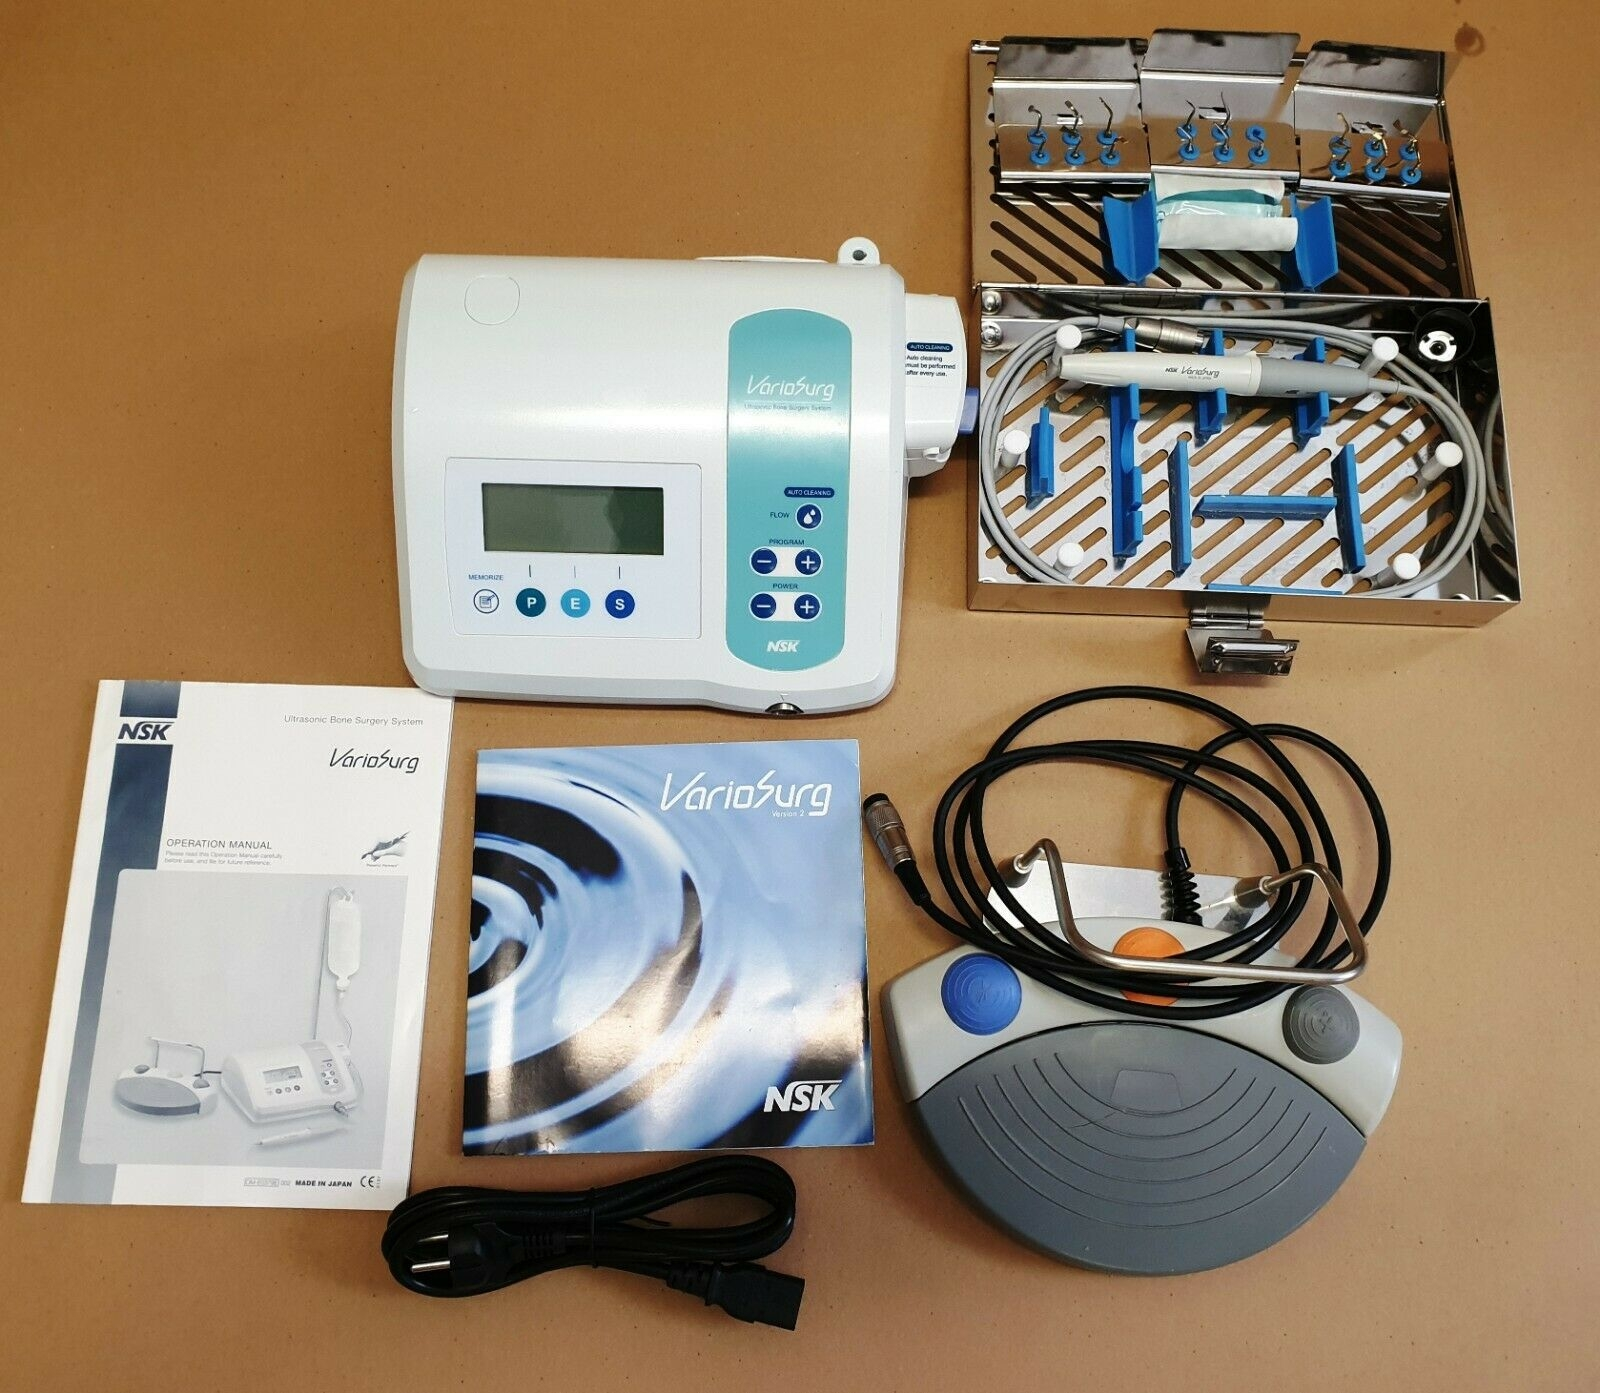 NSK Variosurg Ultrasonic Bone Surgery Ultraschall Chirurgiegerät